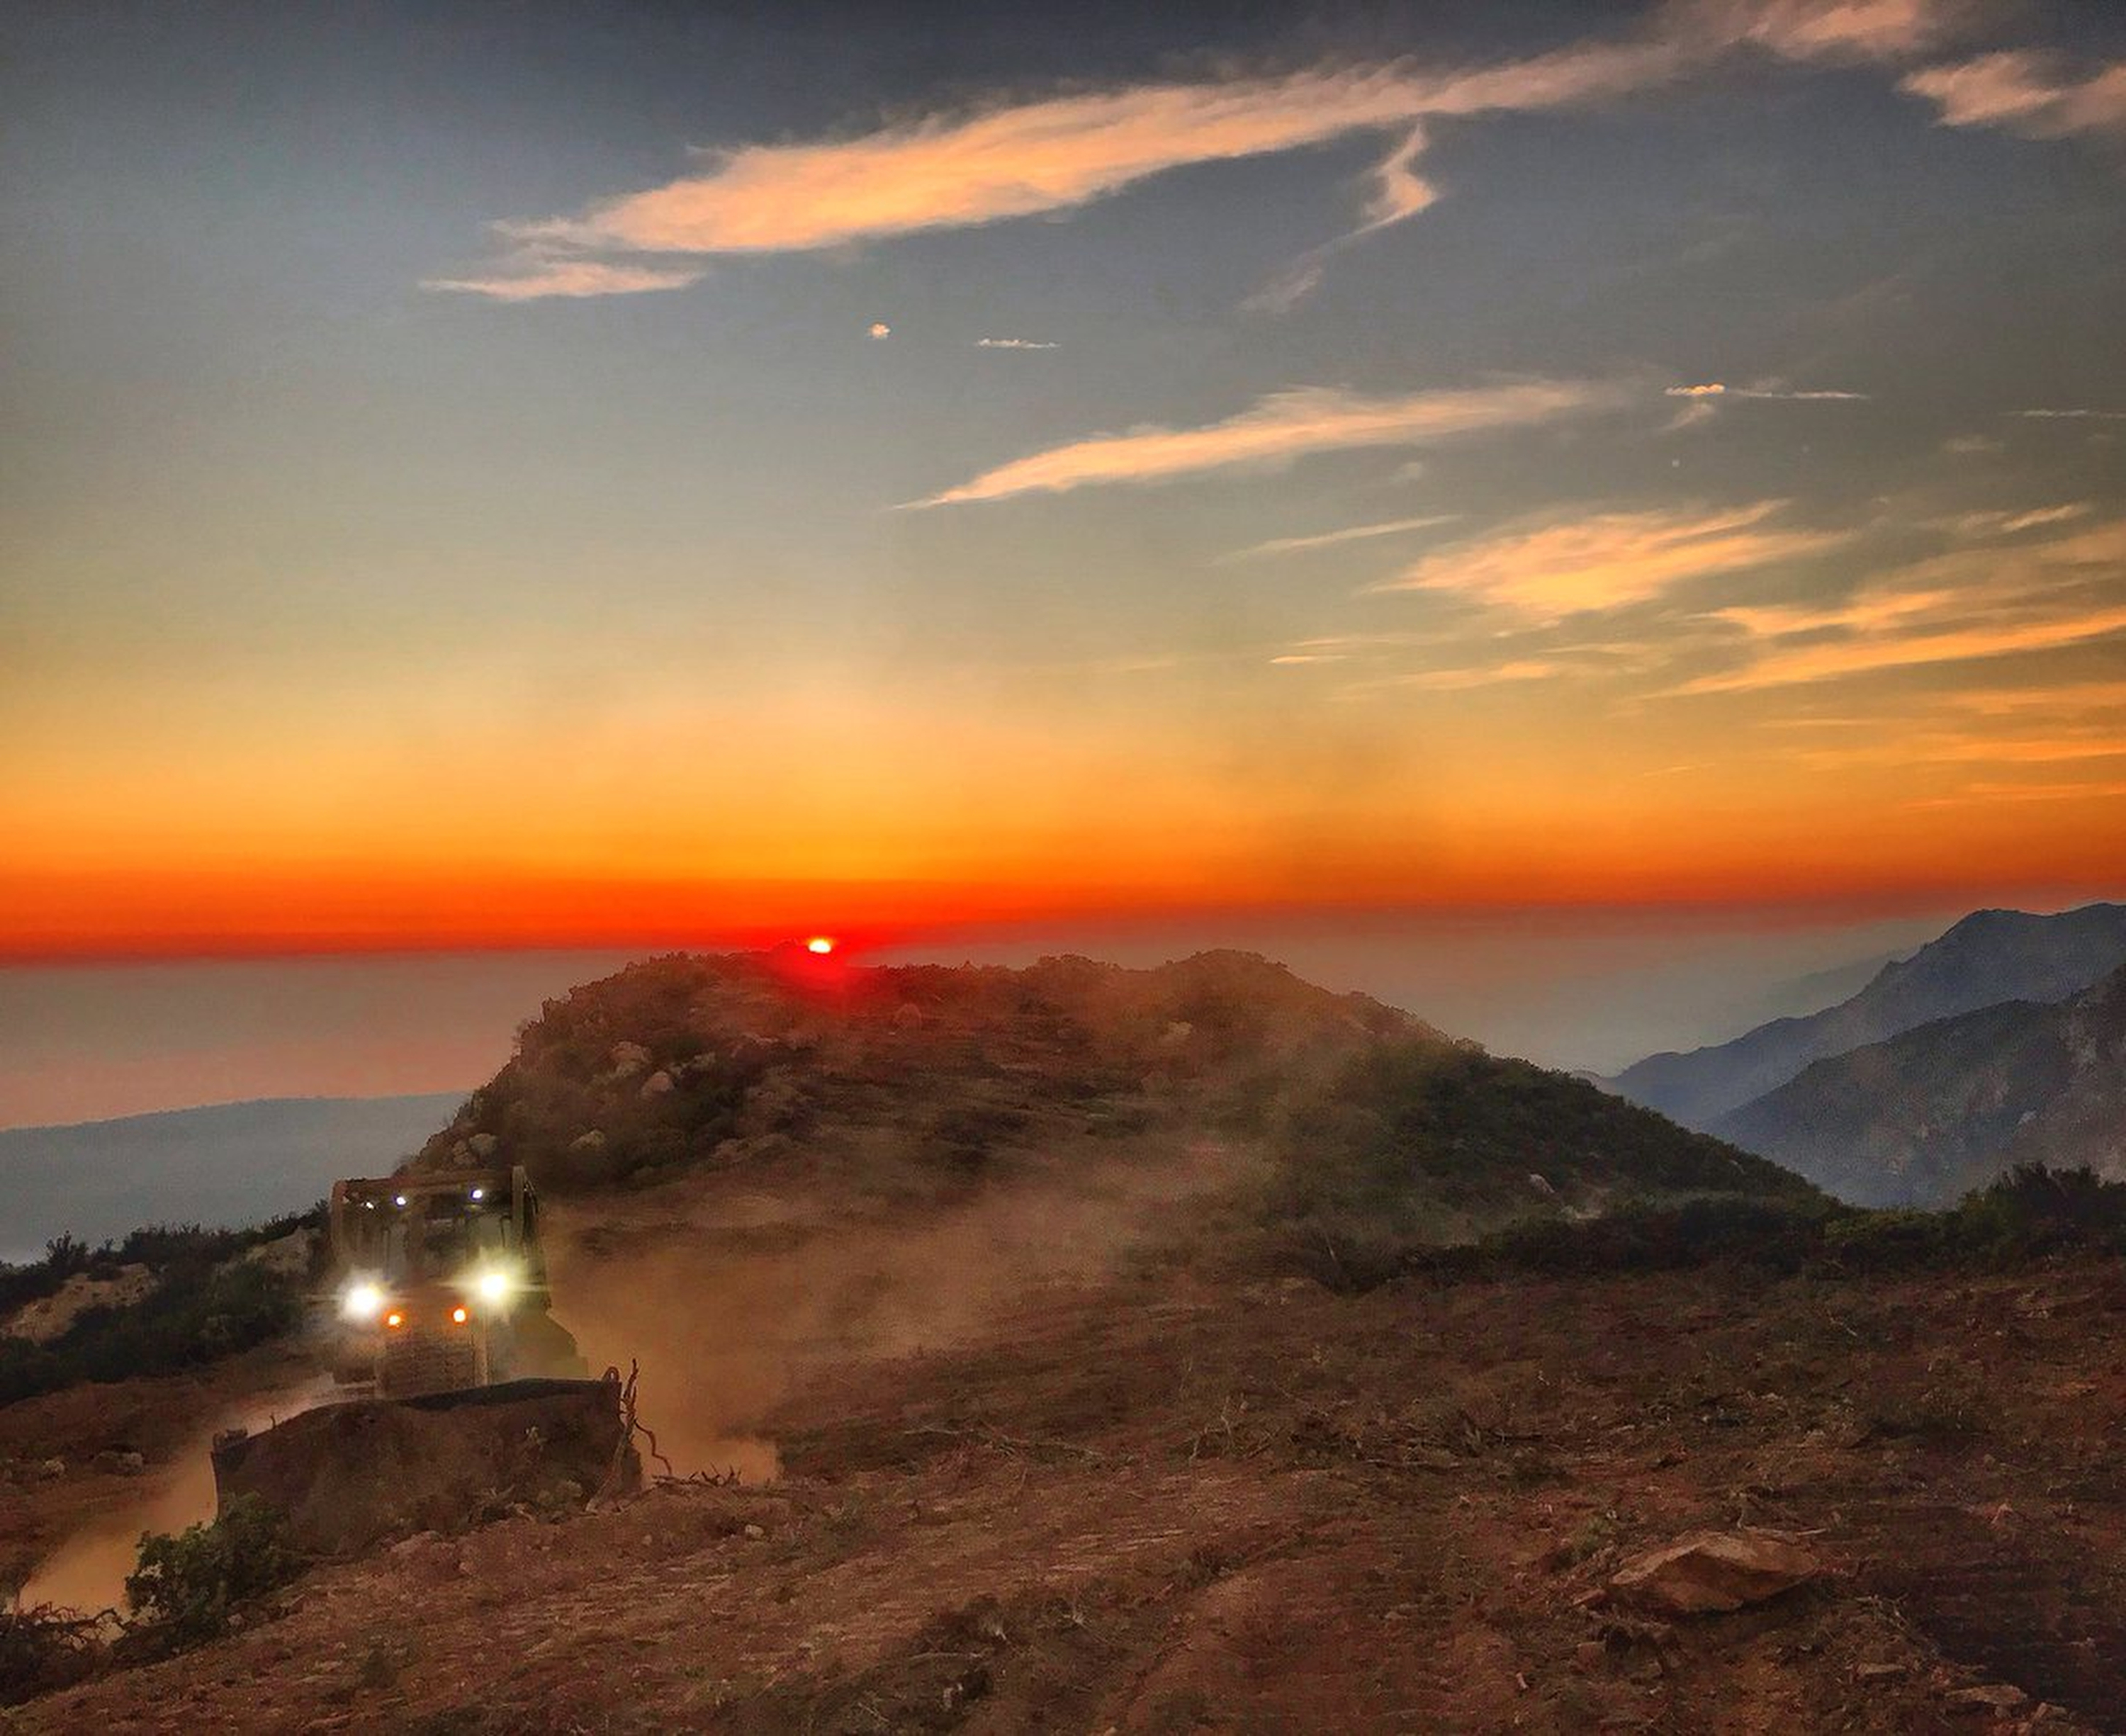 In this photo released by Santa Barbara County Fire Department, a dozer from the Santa Barbara County Fire Department clears a fire break across a canyon from atop Camino Cielo down to Gibraltar to make a stand should the fire move in that direction, Wednesday, Dec. 13, 2017, in the Santa Ynez Mountains area of Santa Barbara, Calif. State fire officials predicted Wednesday night that the Thomas Fire northwest of Los Angeles will continue to grow as it eats up parched brush and hot, dry weather continues. (Mike Eliason/Santa Barbara County Fire Department via AP)